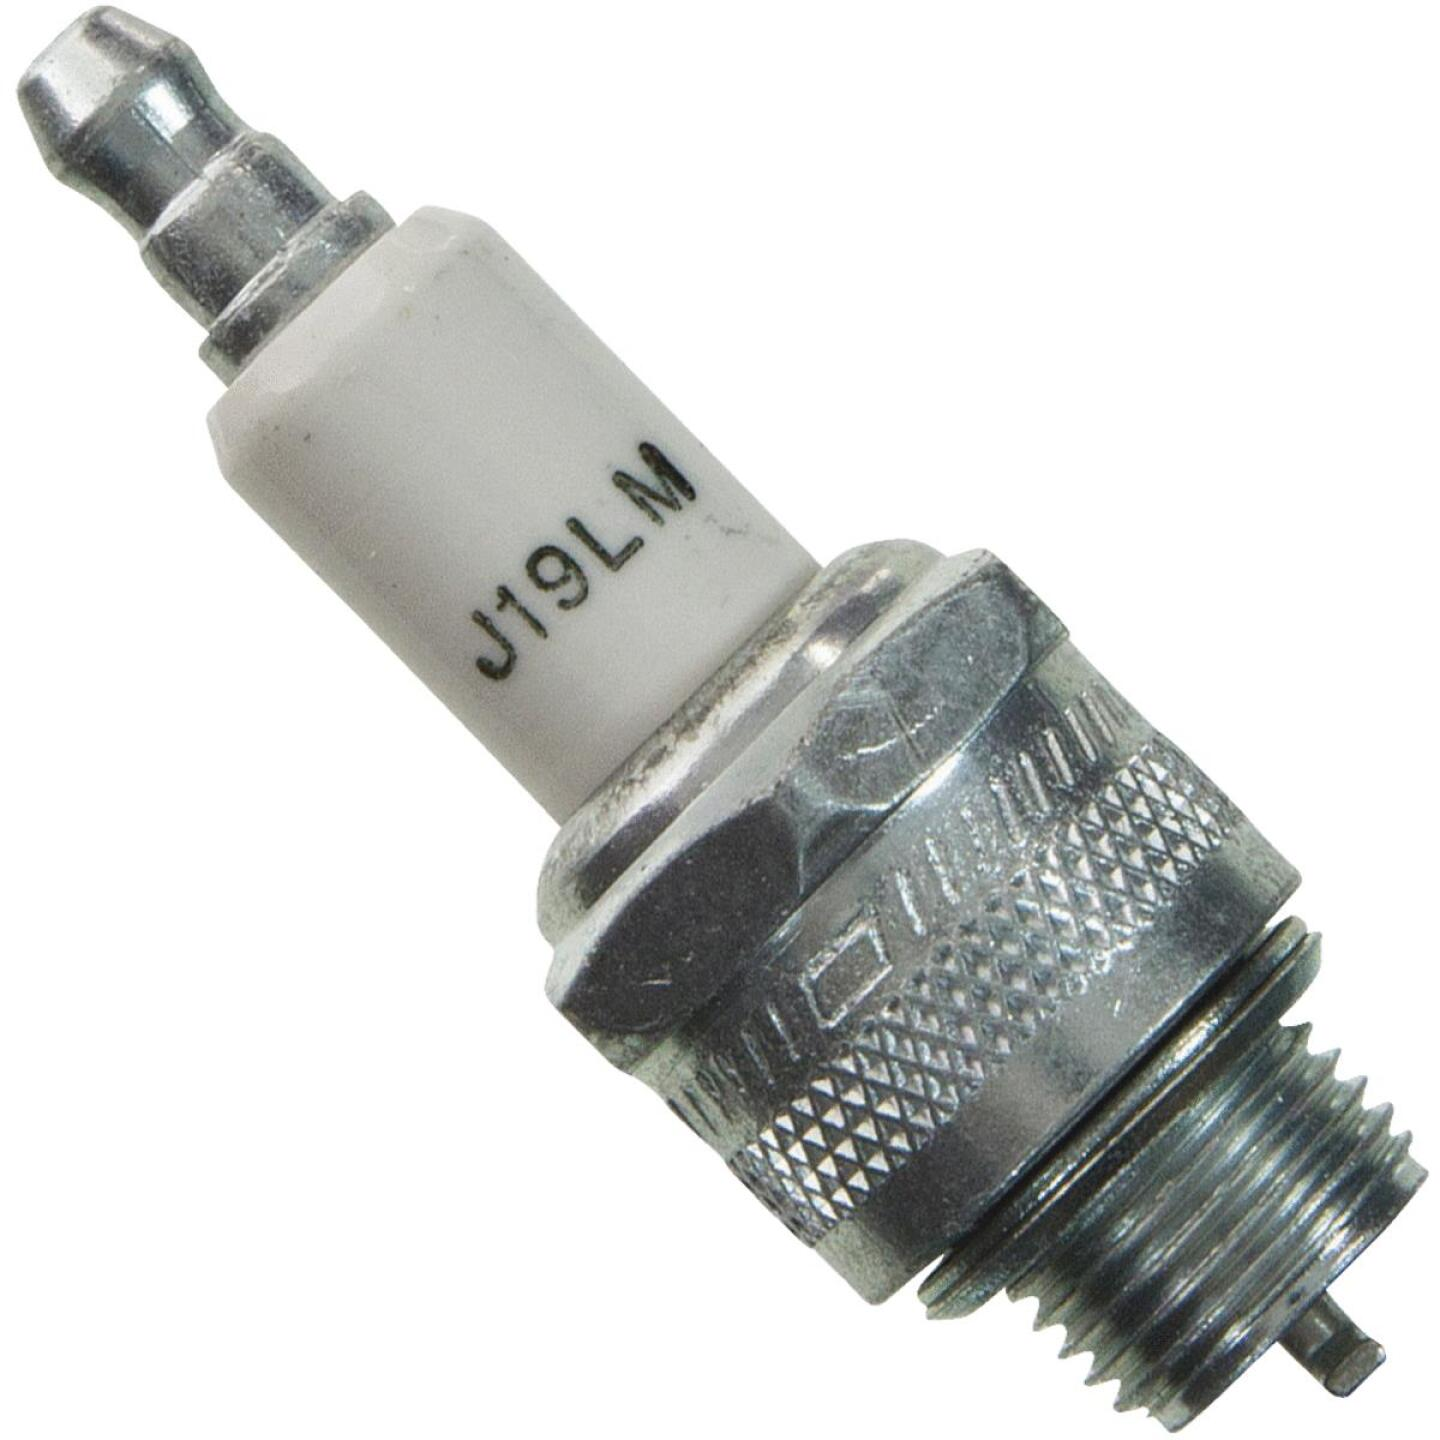 Champion J19LM Copper Plus Small Engine Spark Plug (24-Pack) Image 1